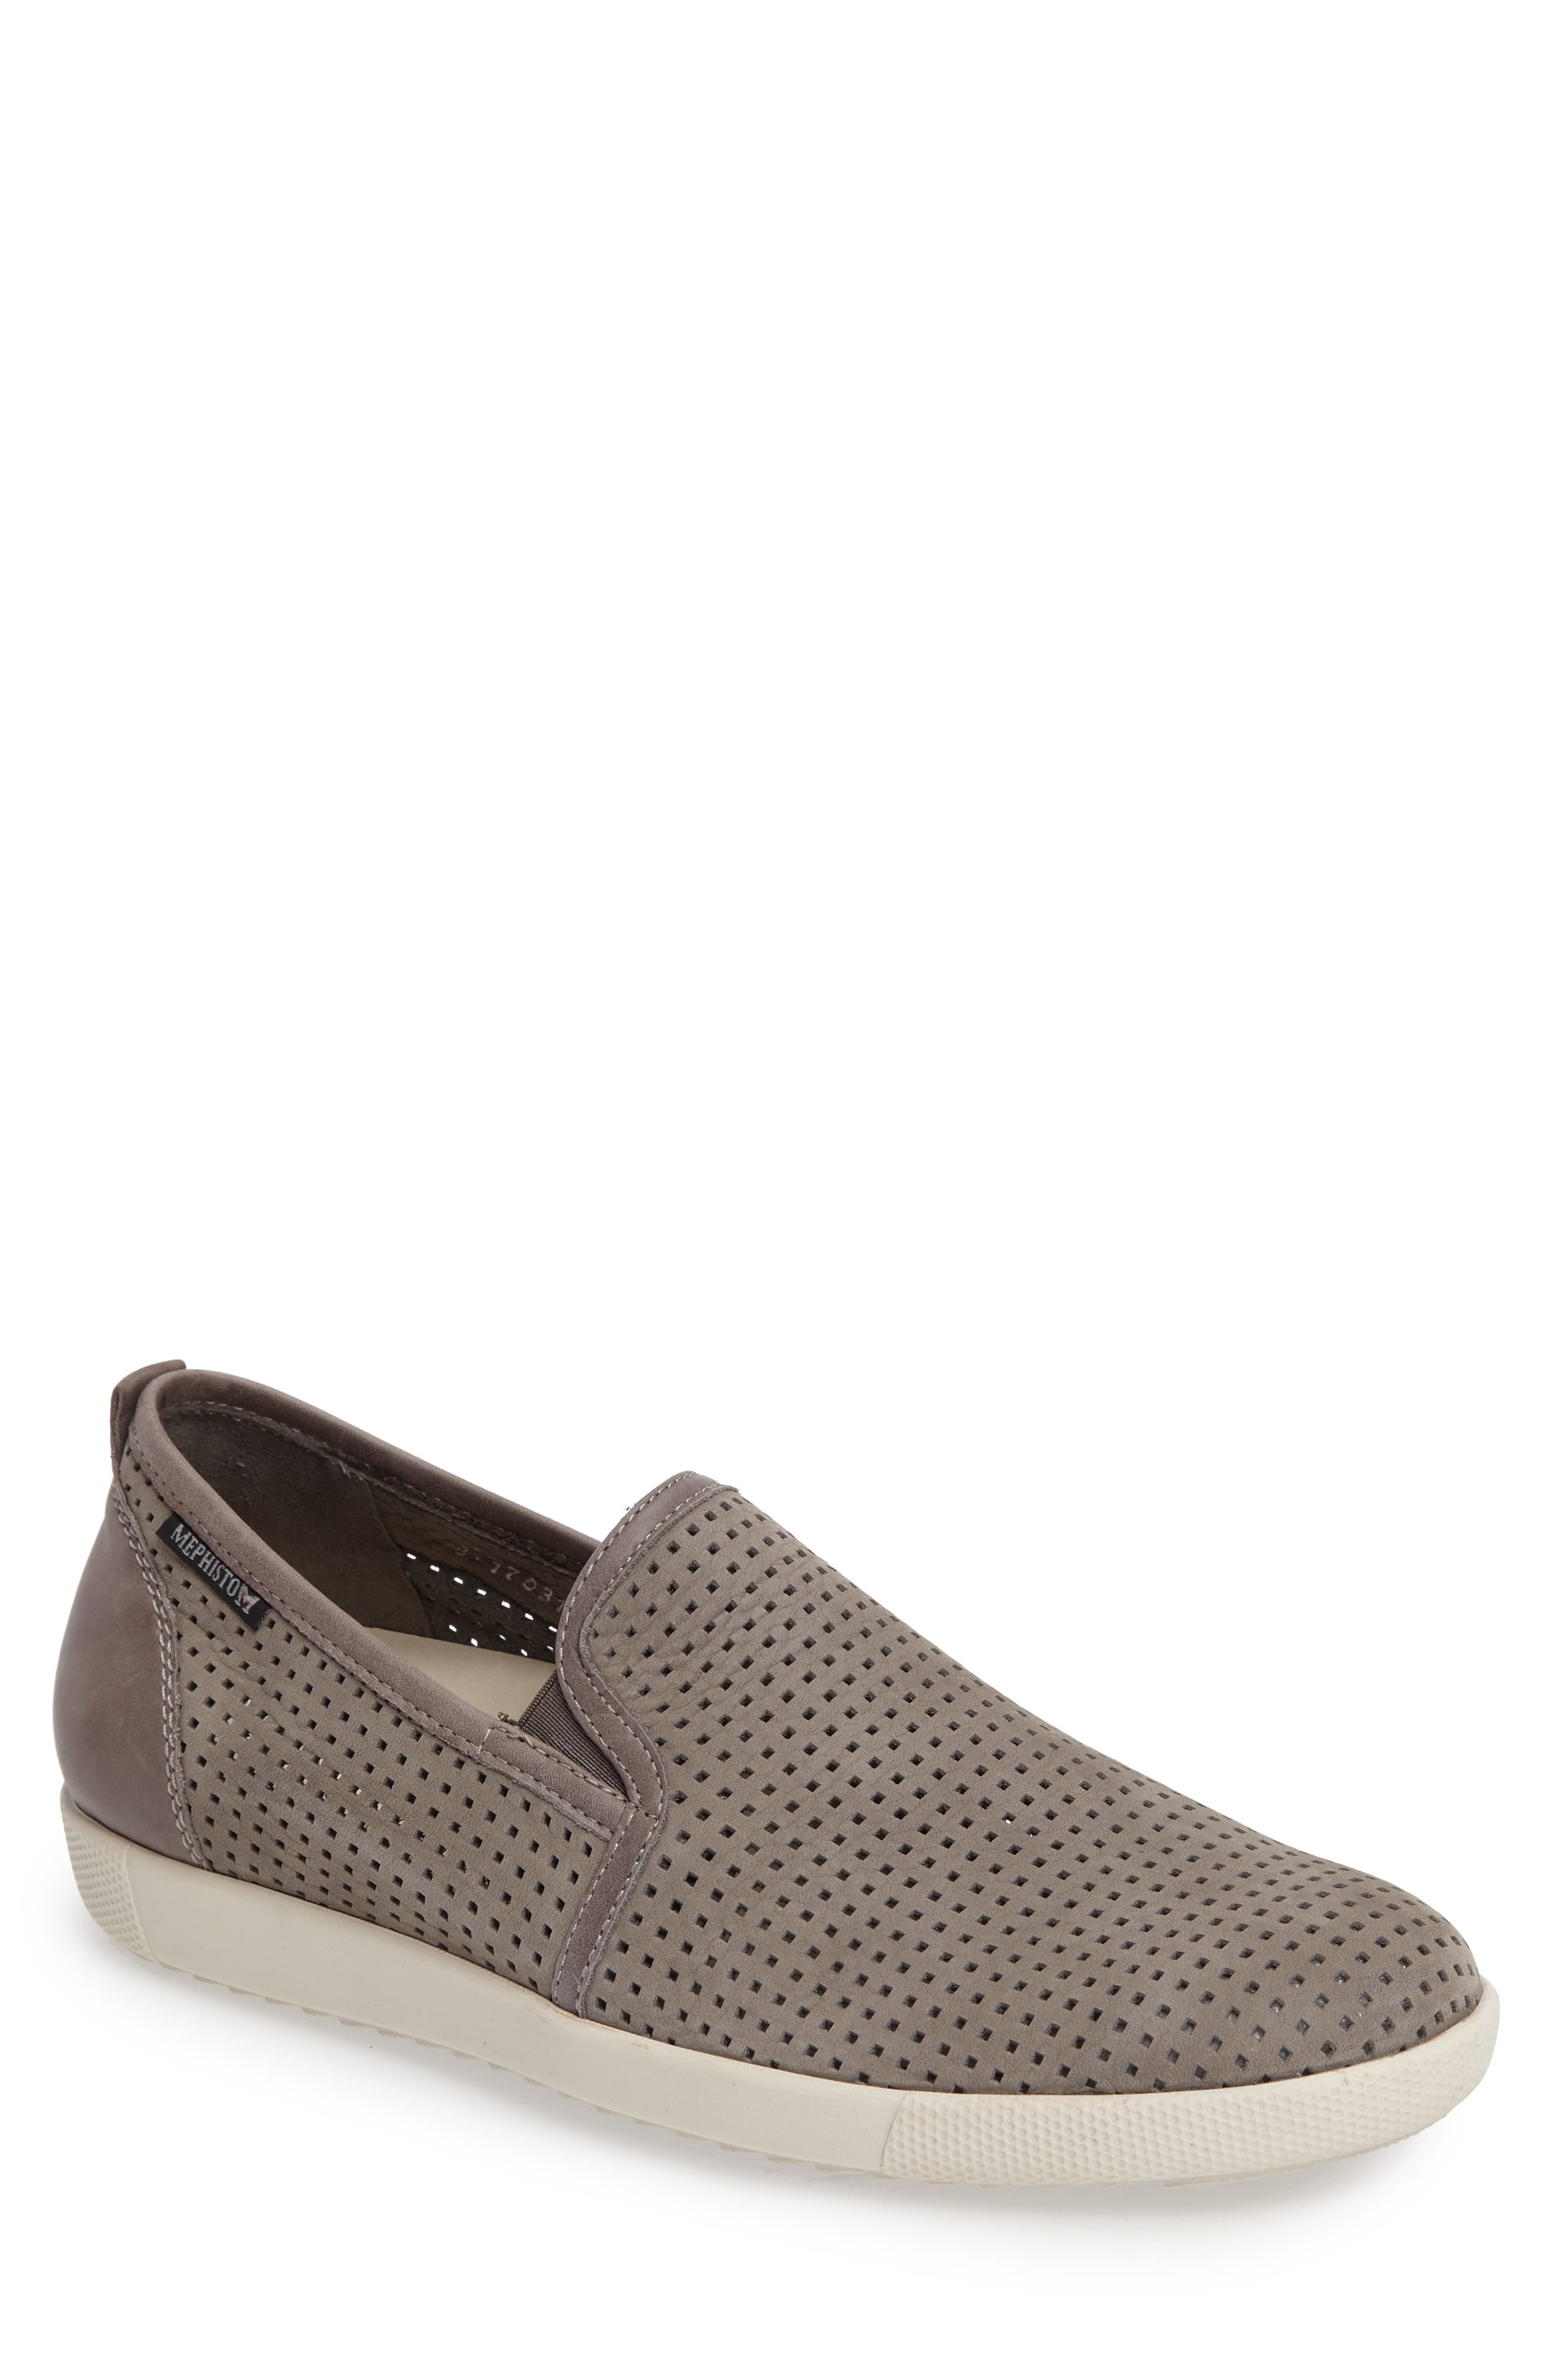 MEPHISTO 'Ulrich' Perforated Leather Slip-On, Main, color, LIGHT GREY SPORTBUCK